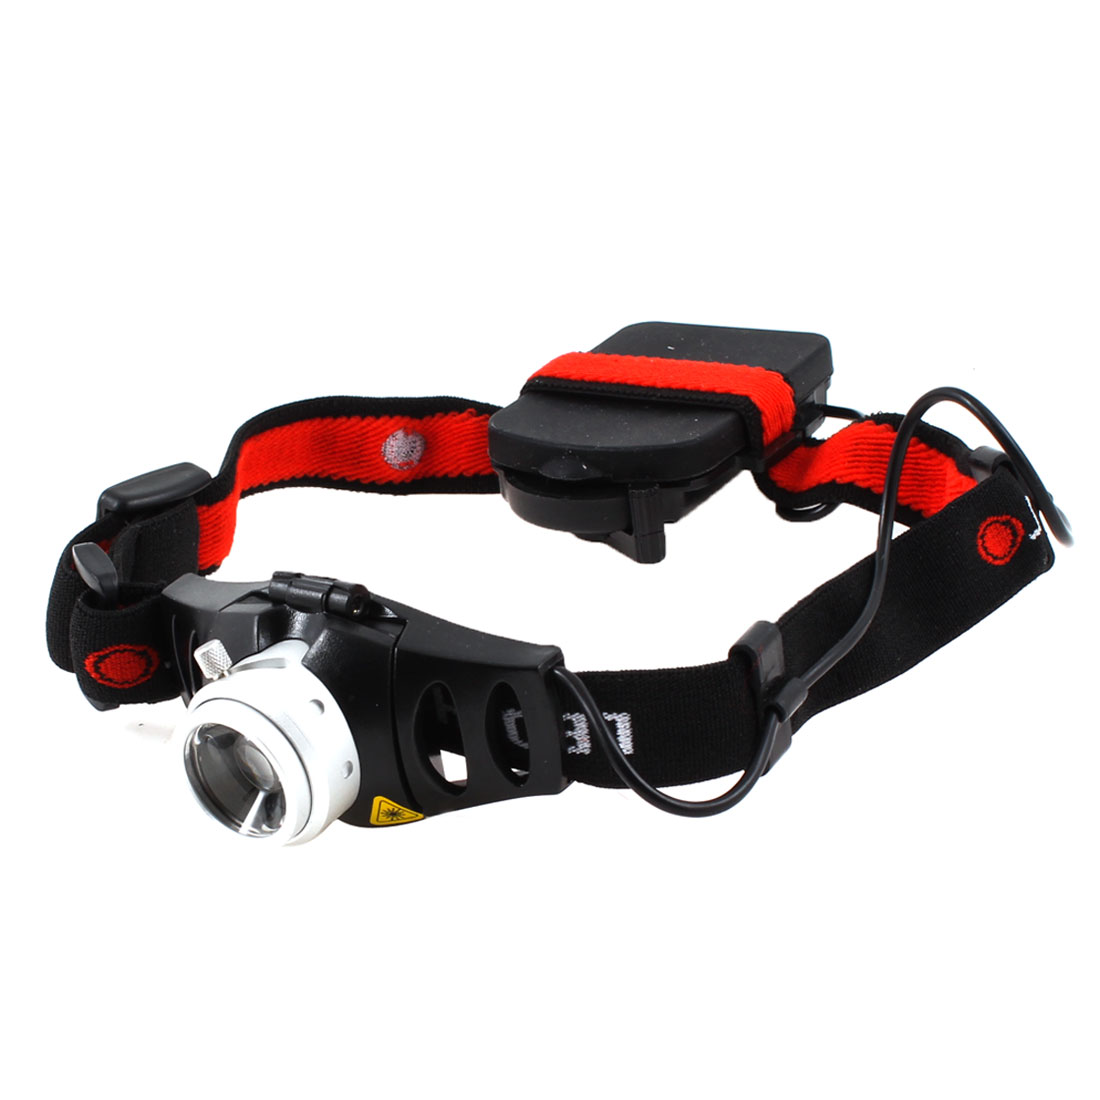 White LED Focus Adjustable 3 Model Headlight Headlamp Torch 160LM for Hiking